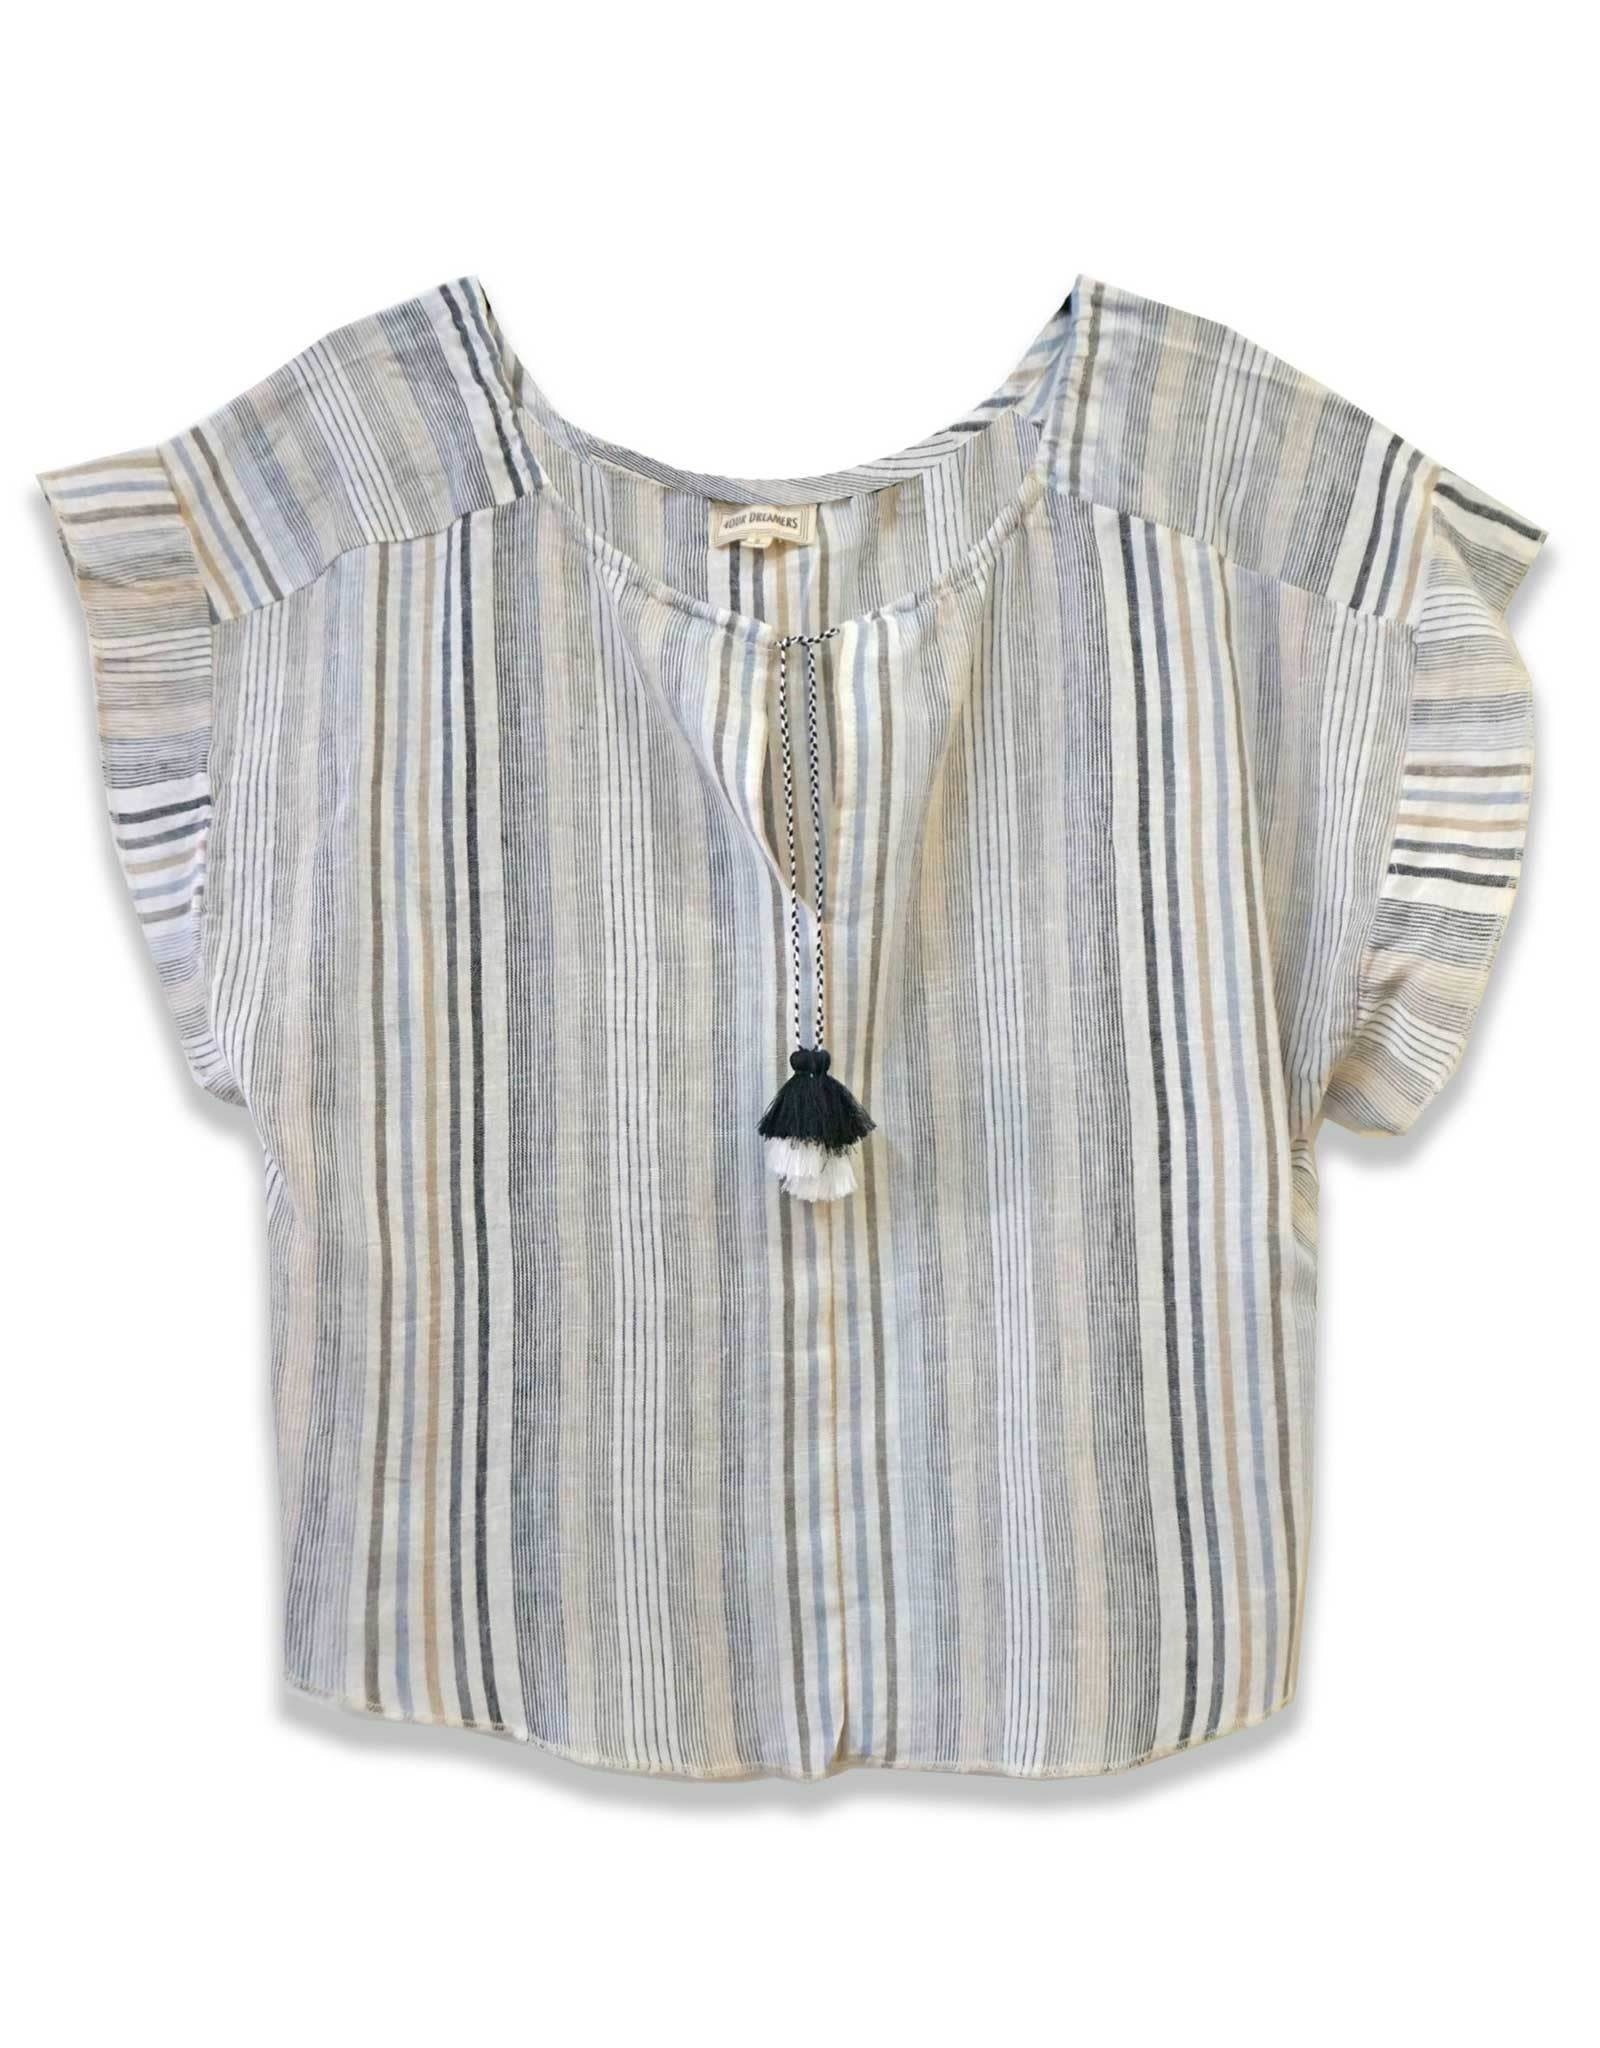 4 our Dreamers 4 our Dreamers Tassel Top